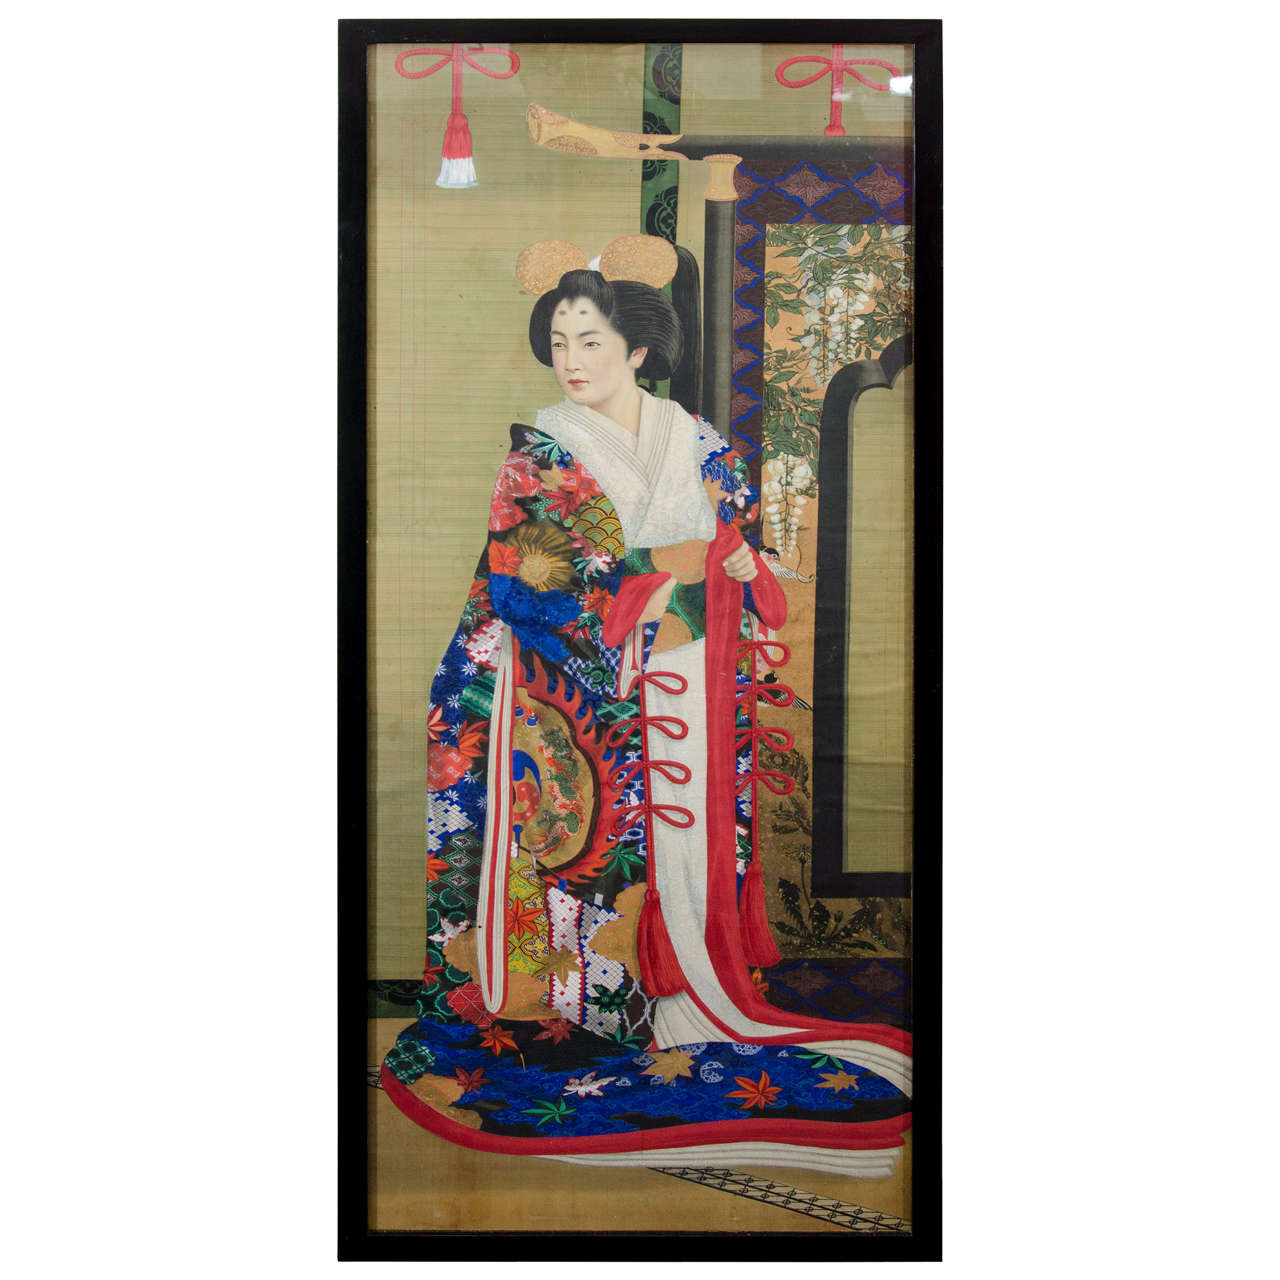 Japanese Imperial Portrait Painting of Woman in Red, Blue and White